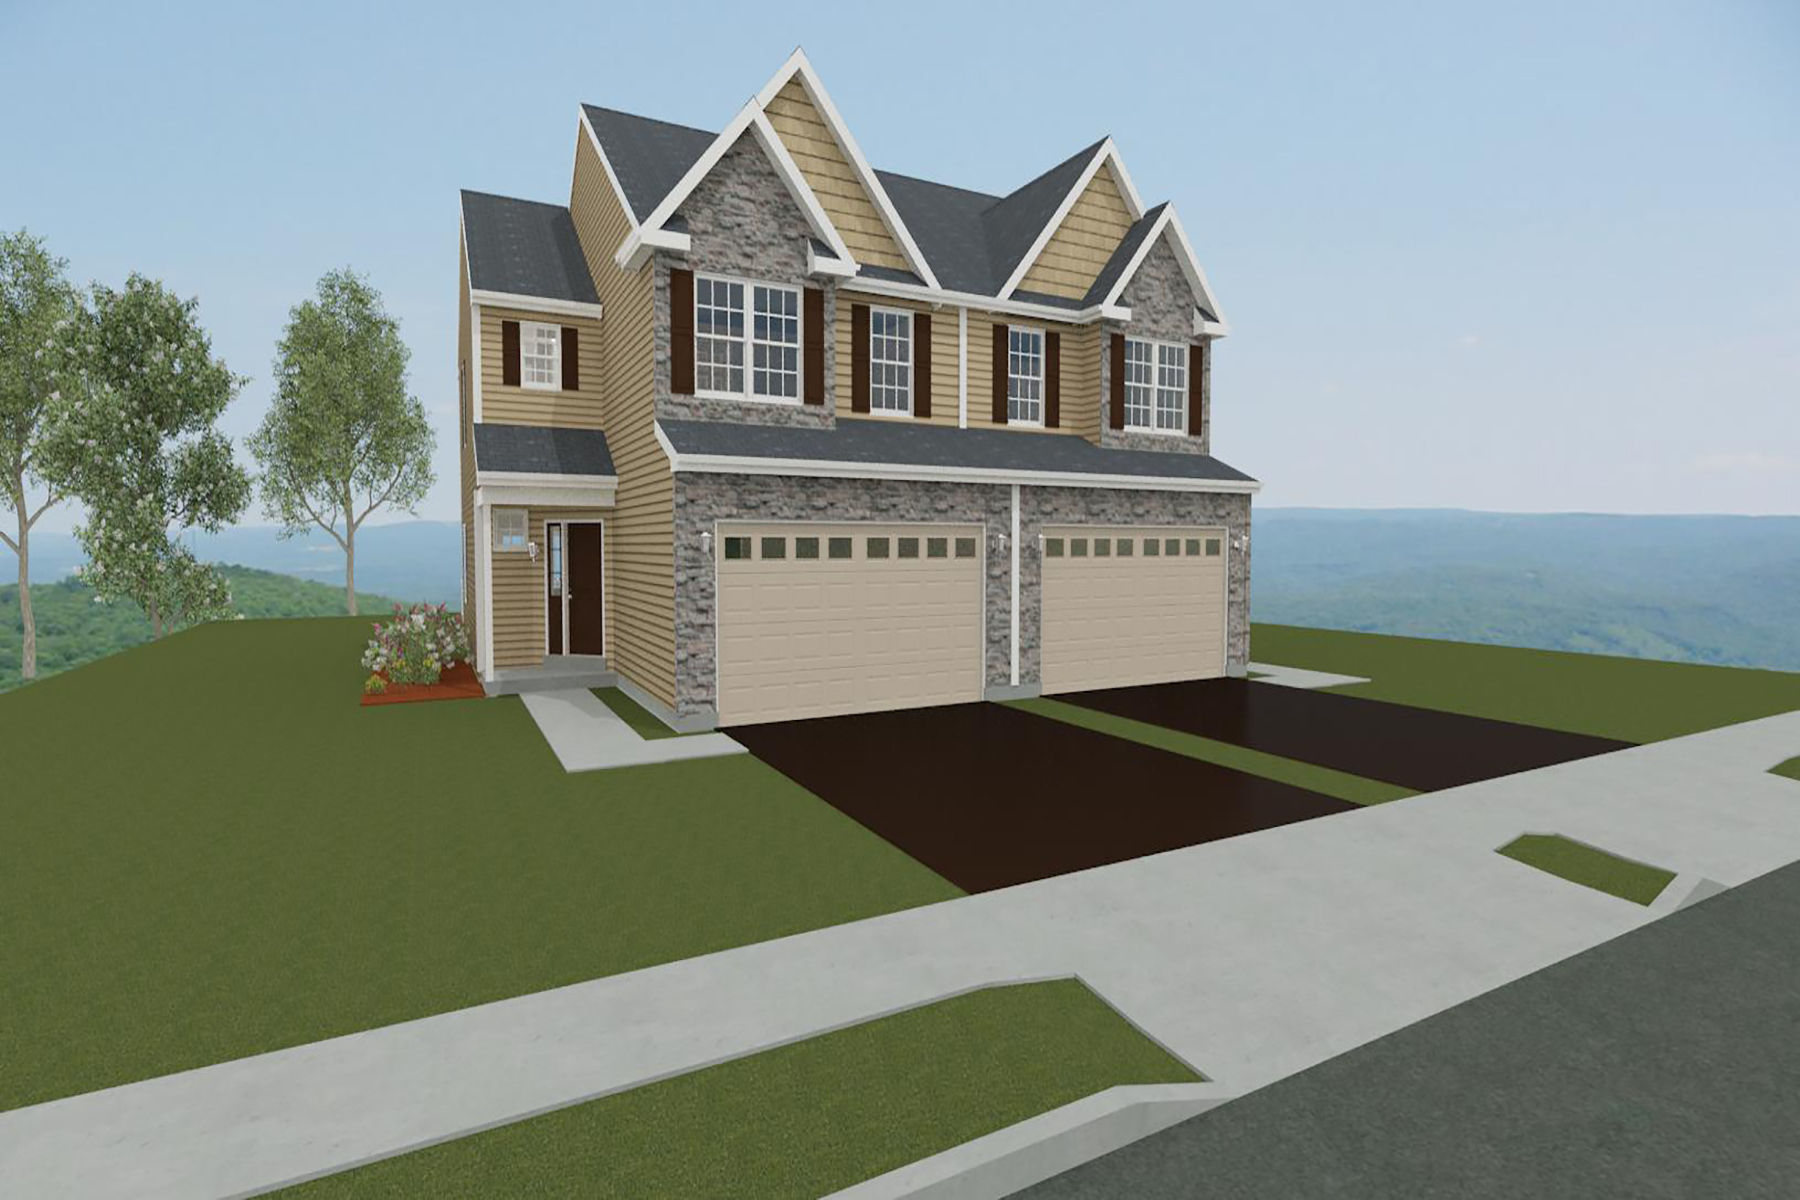 Additional photo for property listing at Villas at Featherton 19 Canvasback Lane Lot 44 Elizabethtown, Pennsylvania 17022 Estados Unidos